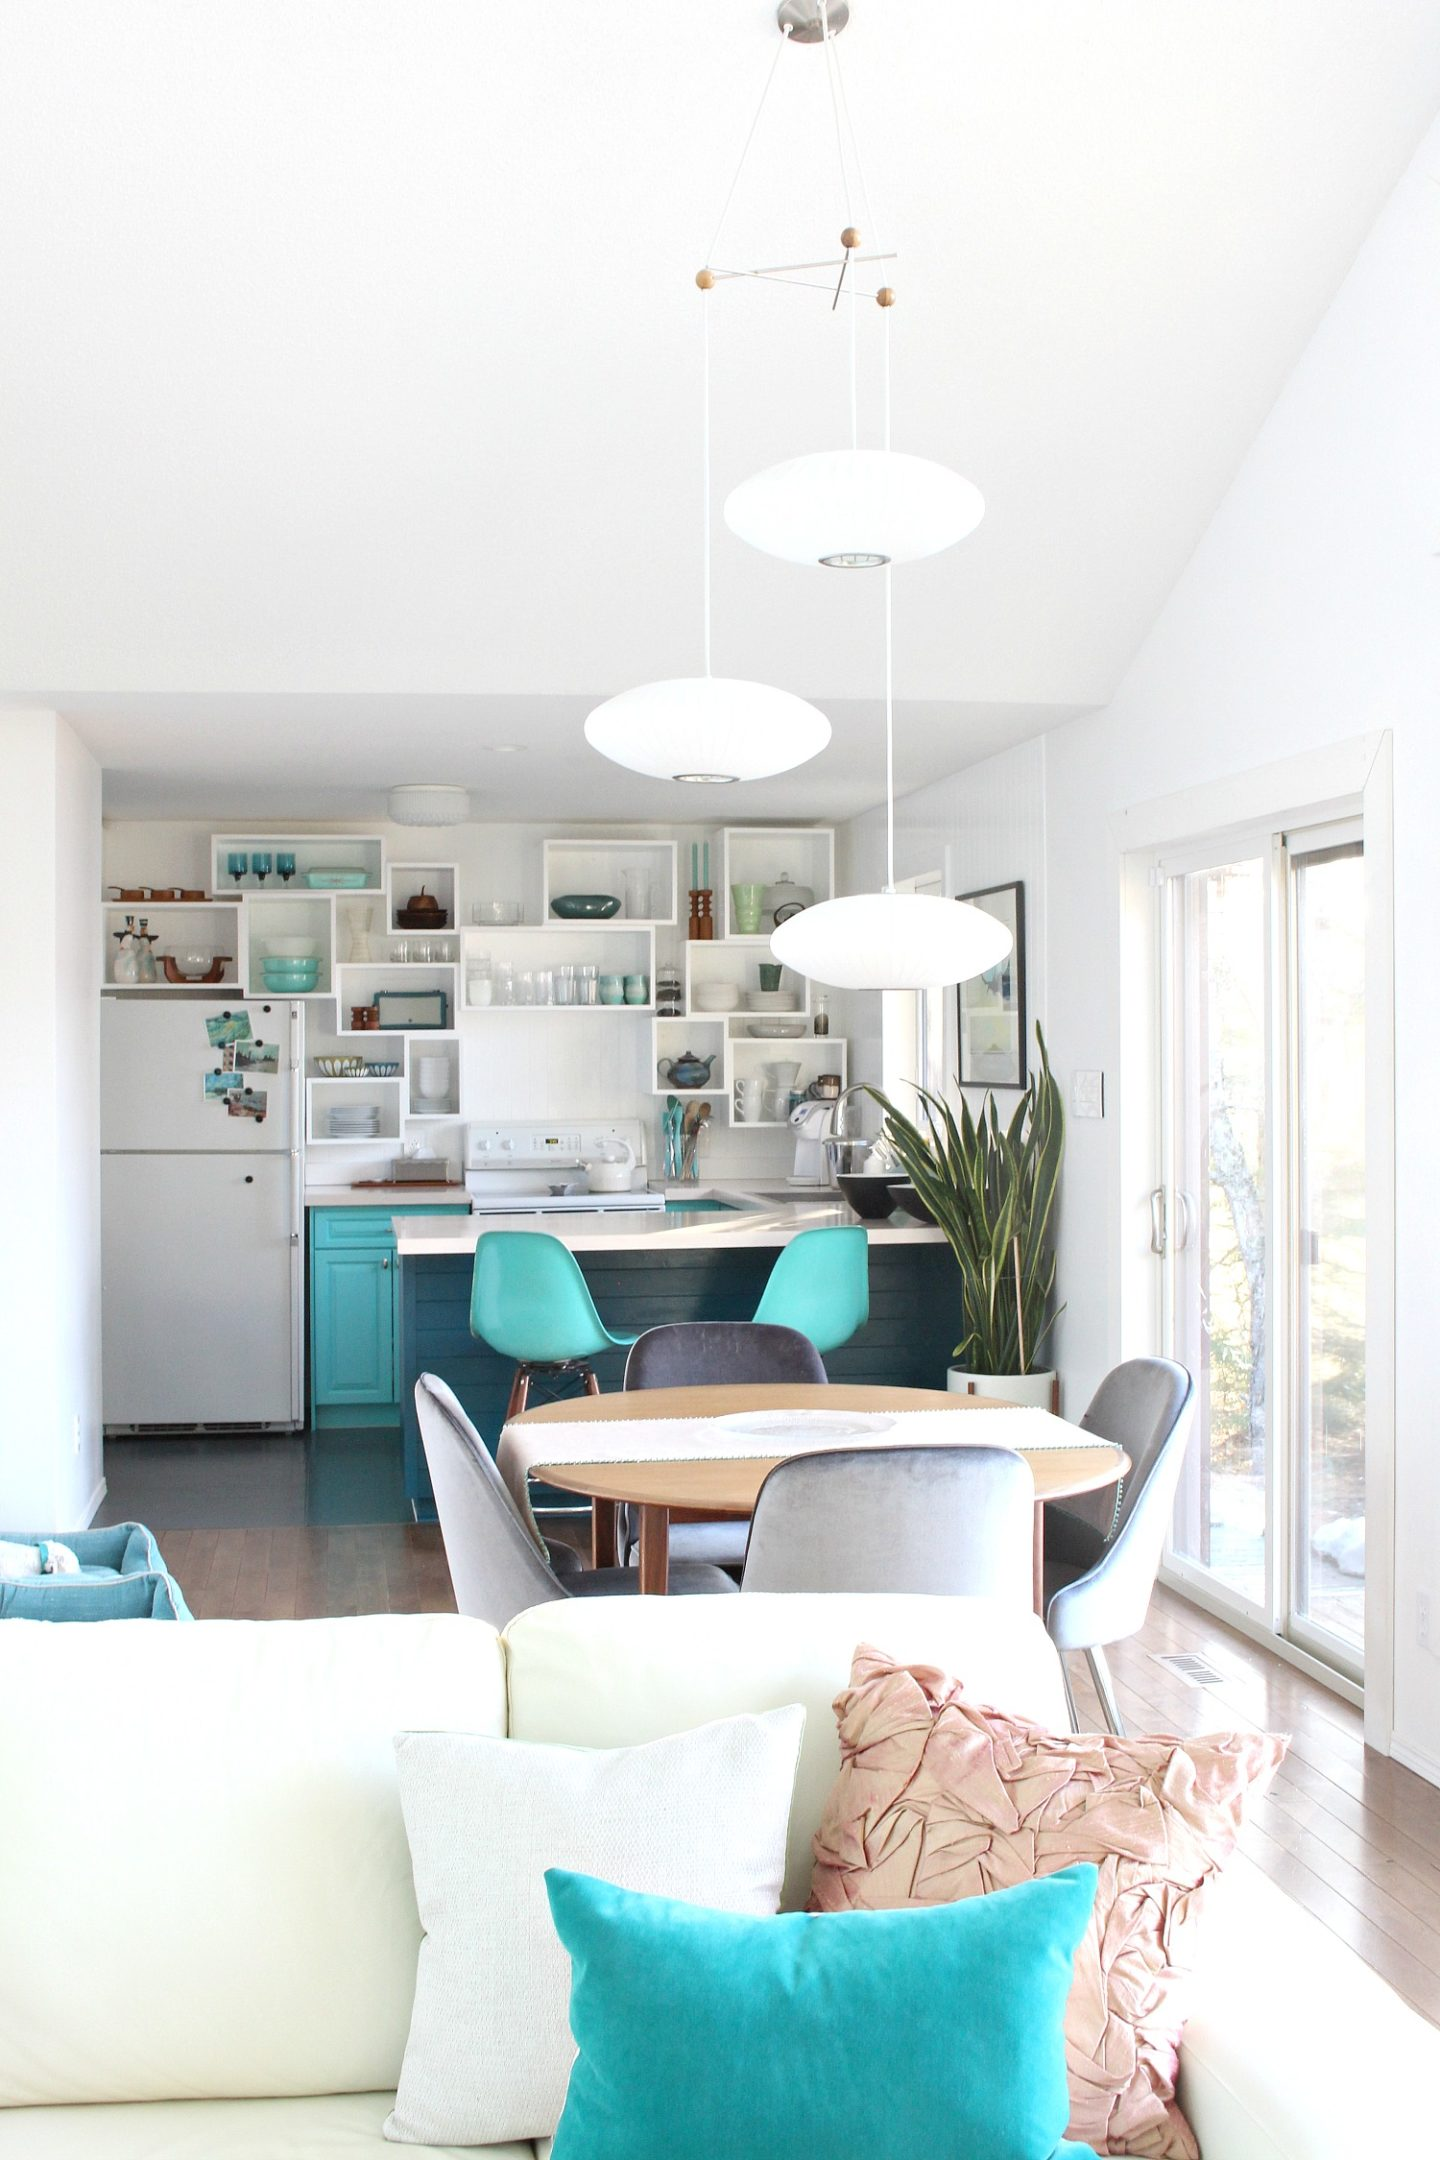 Teal kitchen with no upper cabinets and wall cubbies instead of open shelving for easy kitchen organization that looks unique! Love this kitchen ideas and the teal lake house kitchen decor. #openshelving #lakehouse #kitchen #cubbiesdiy